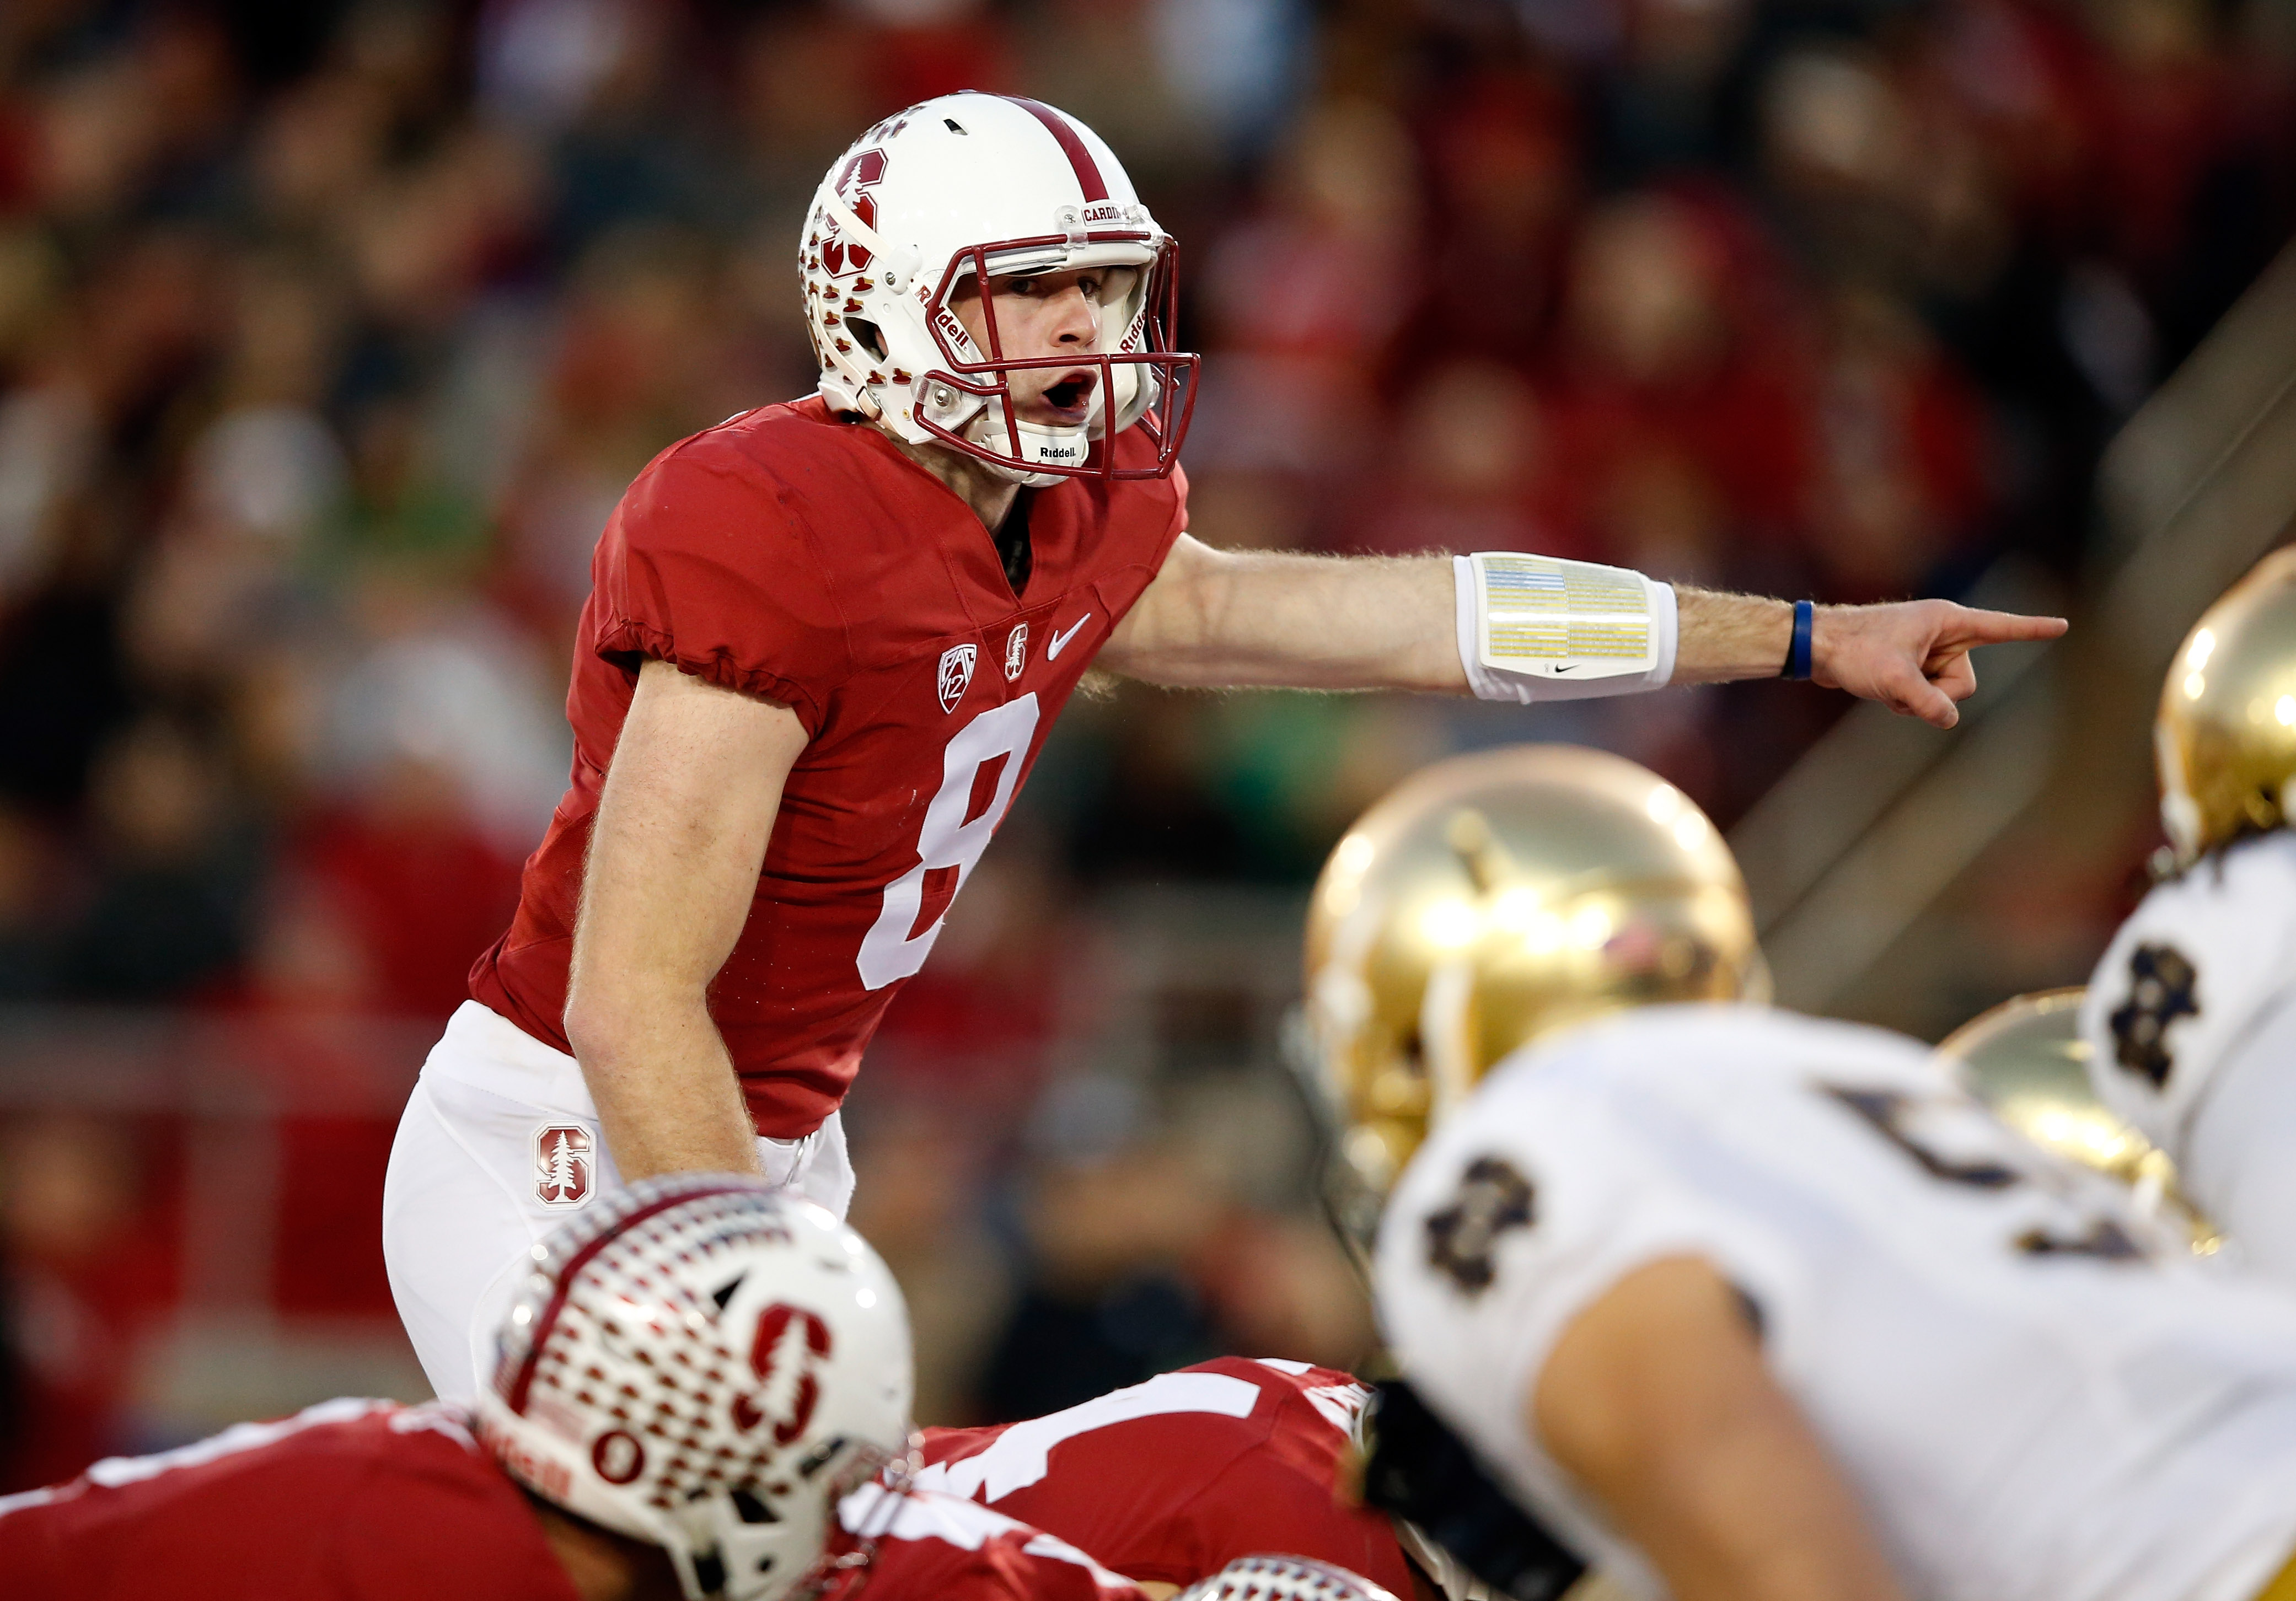 Kevin Hogan of the Stanford Cardinal at Stanford Stadium on Nov. 28, 2015 in Palo Alto, California. (Photo by Ezra Shaw/Getty Images)